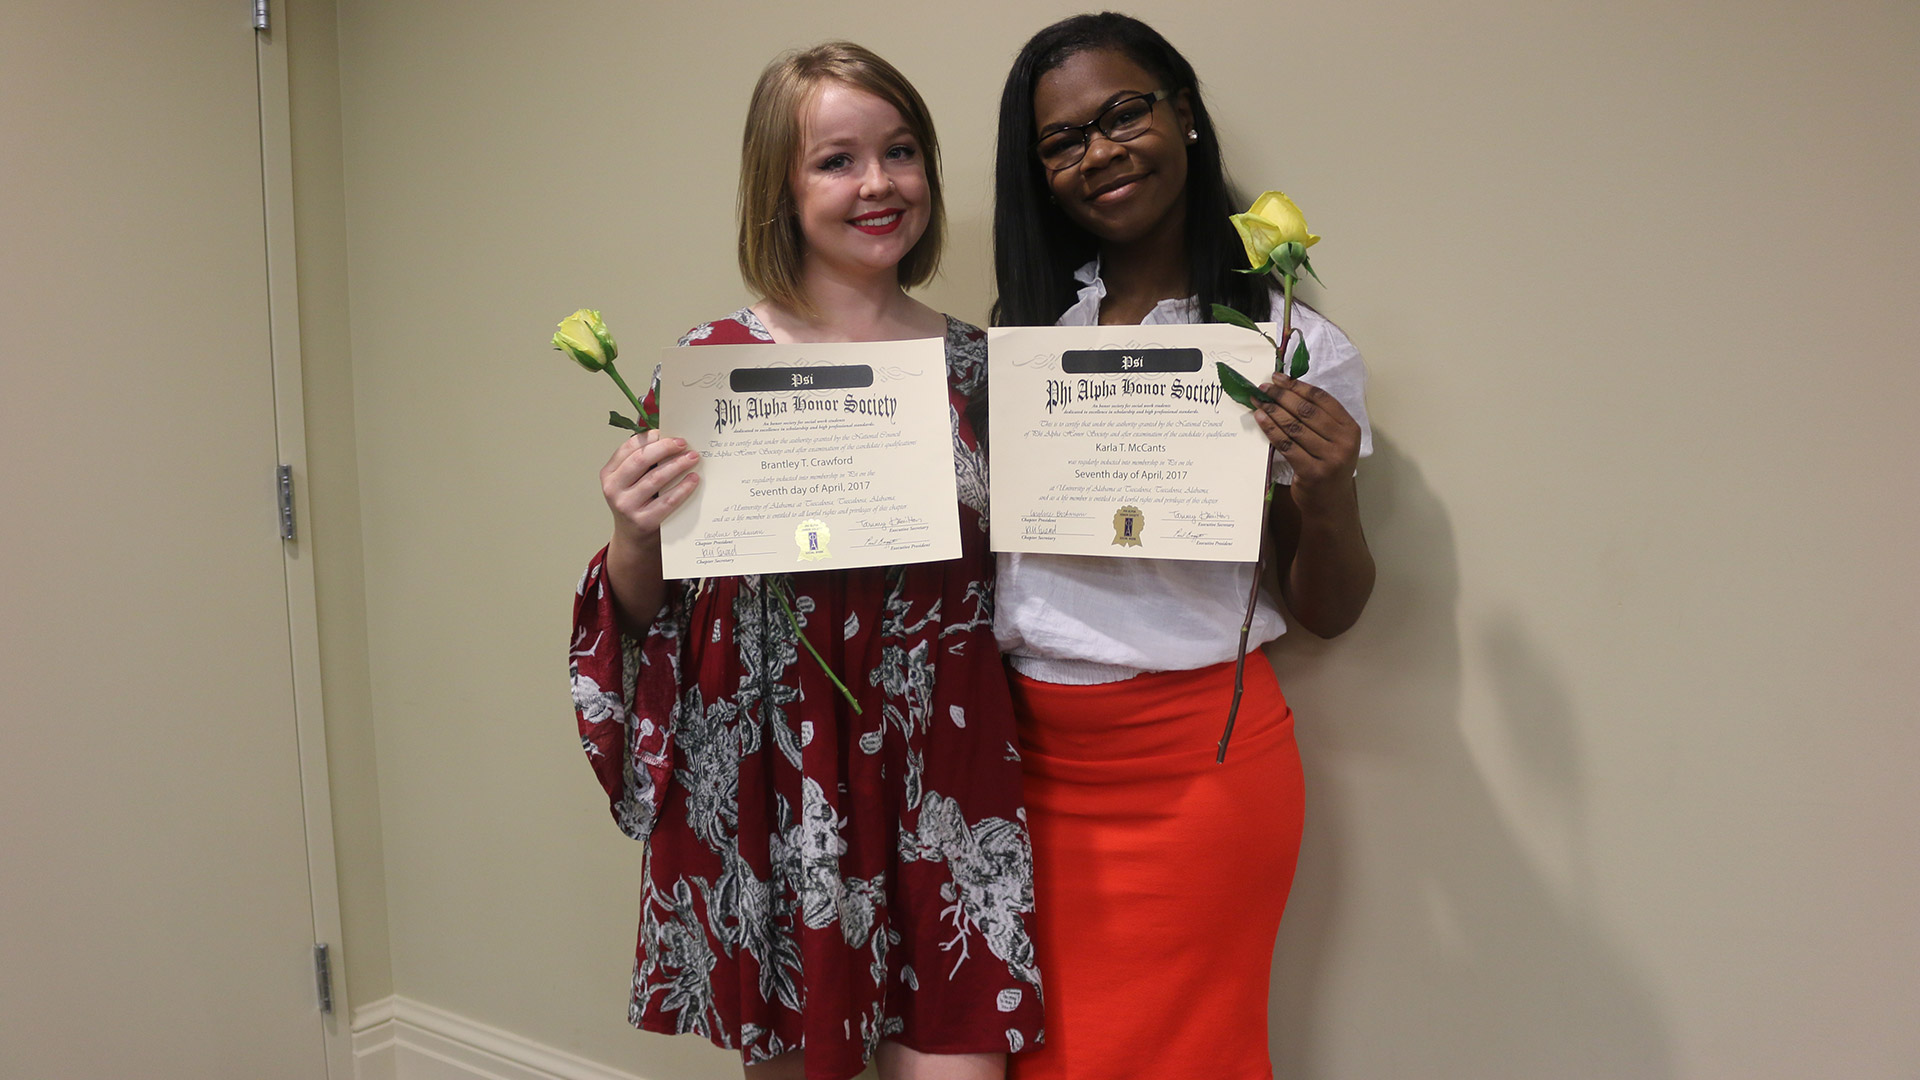 Two girls holding awards